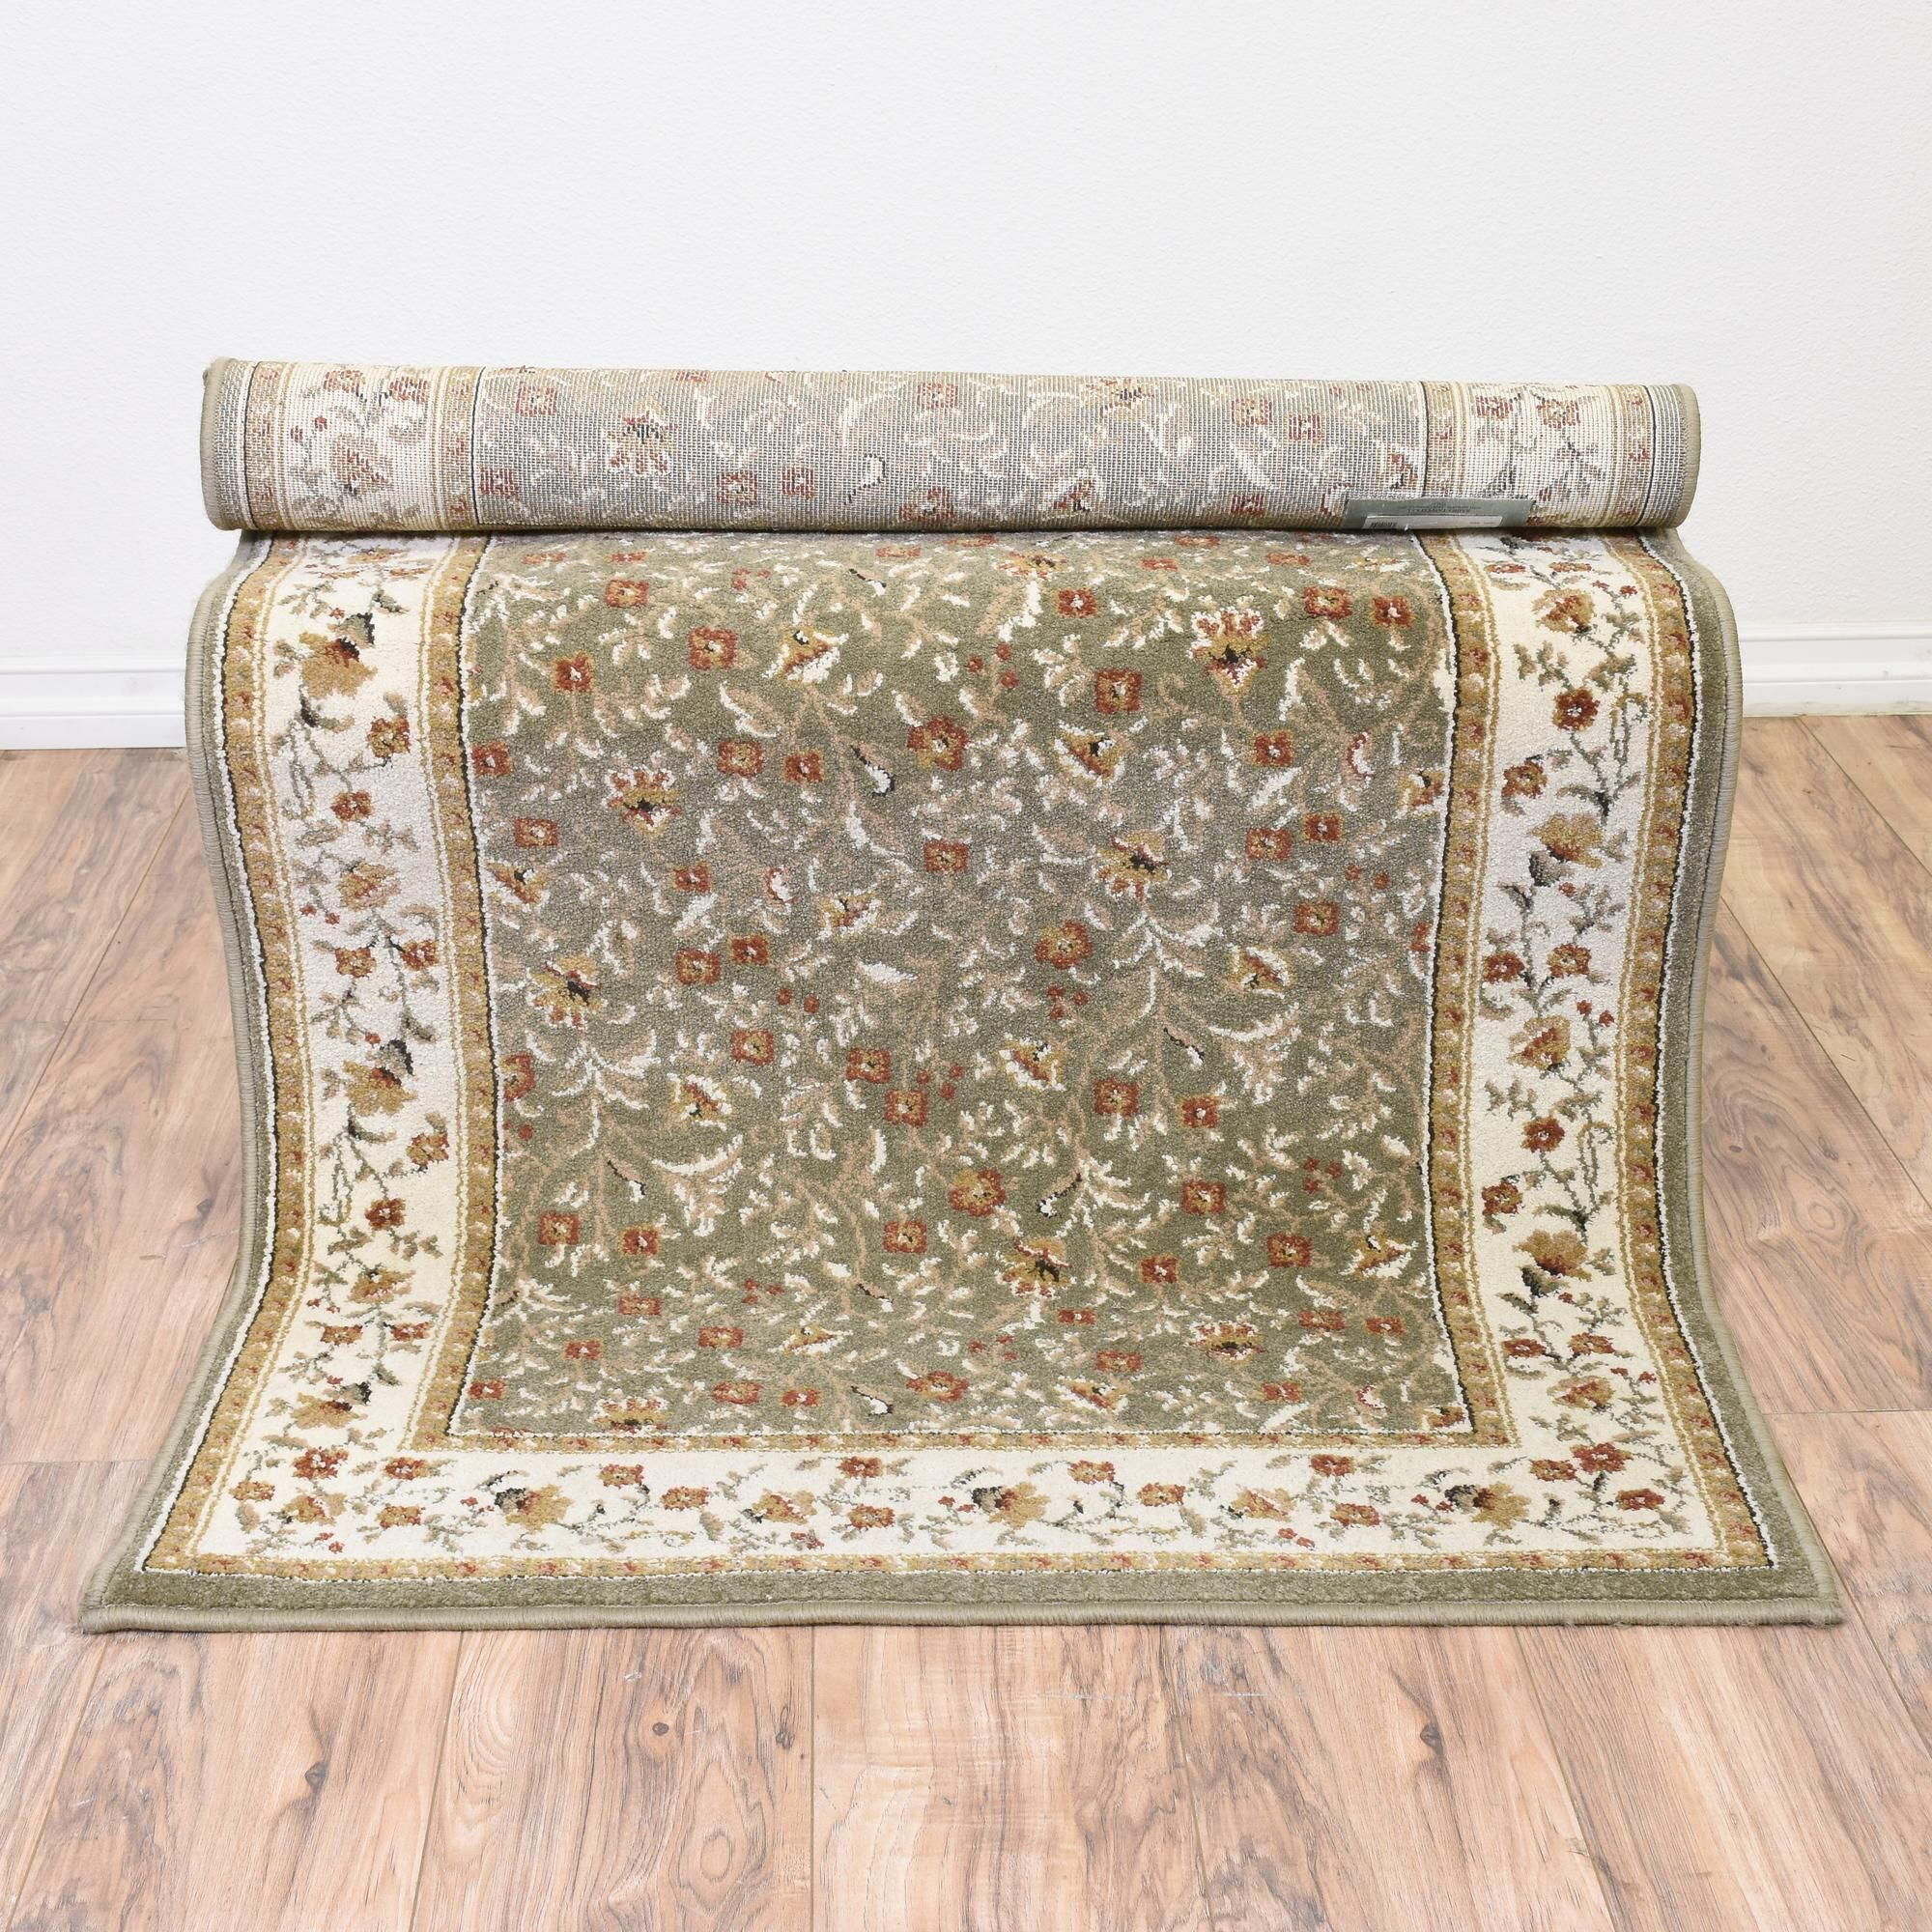 This Area Rug Is Woven In A Durable Sage Green Cream Beige And Red This Large Rug Has Patterned Trim And Floral Print Accen Sage Green Floral Area Rugs Rugs